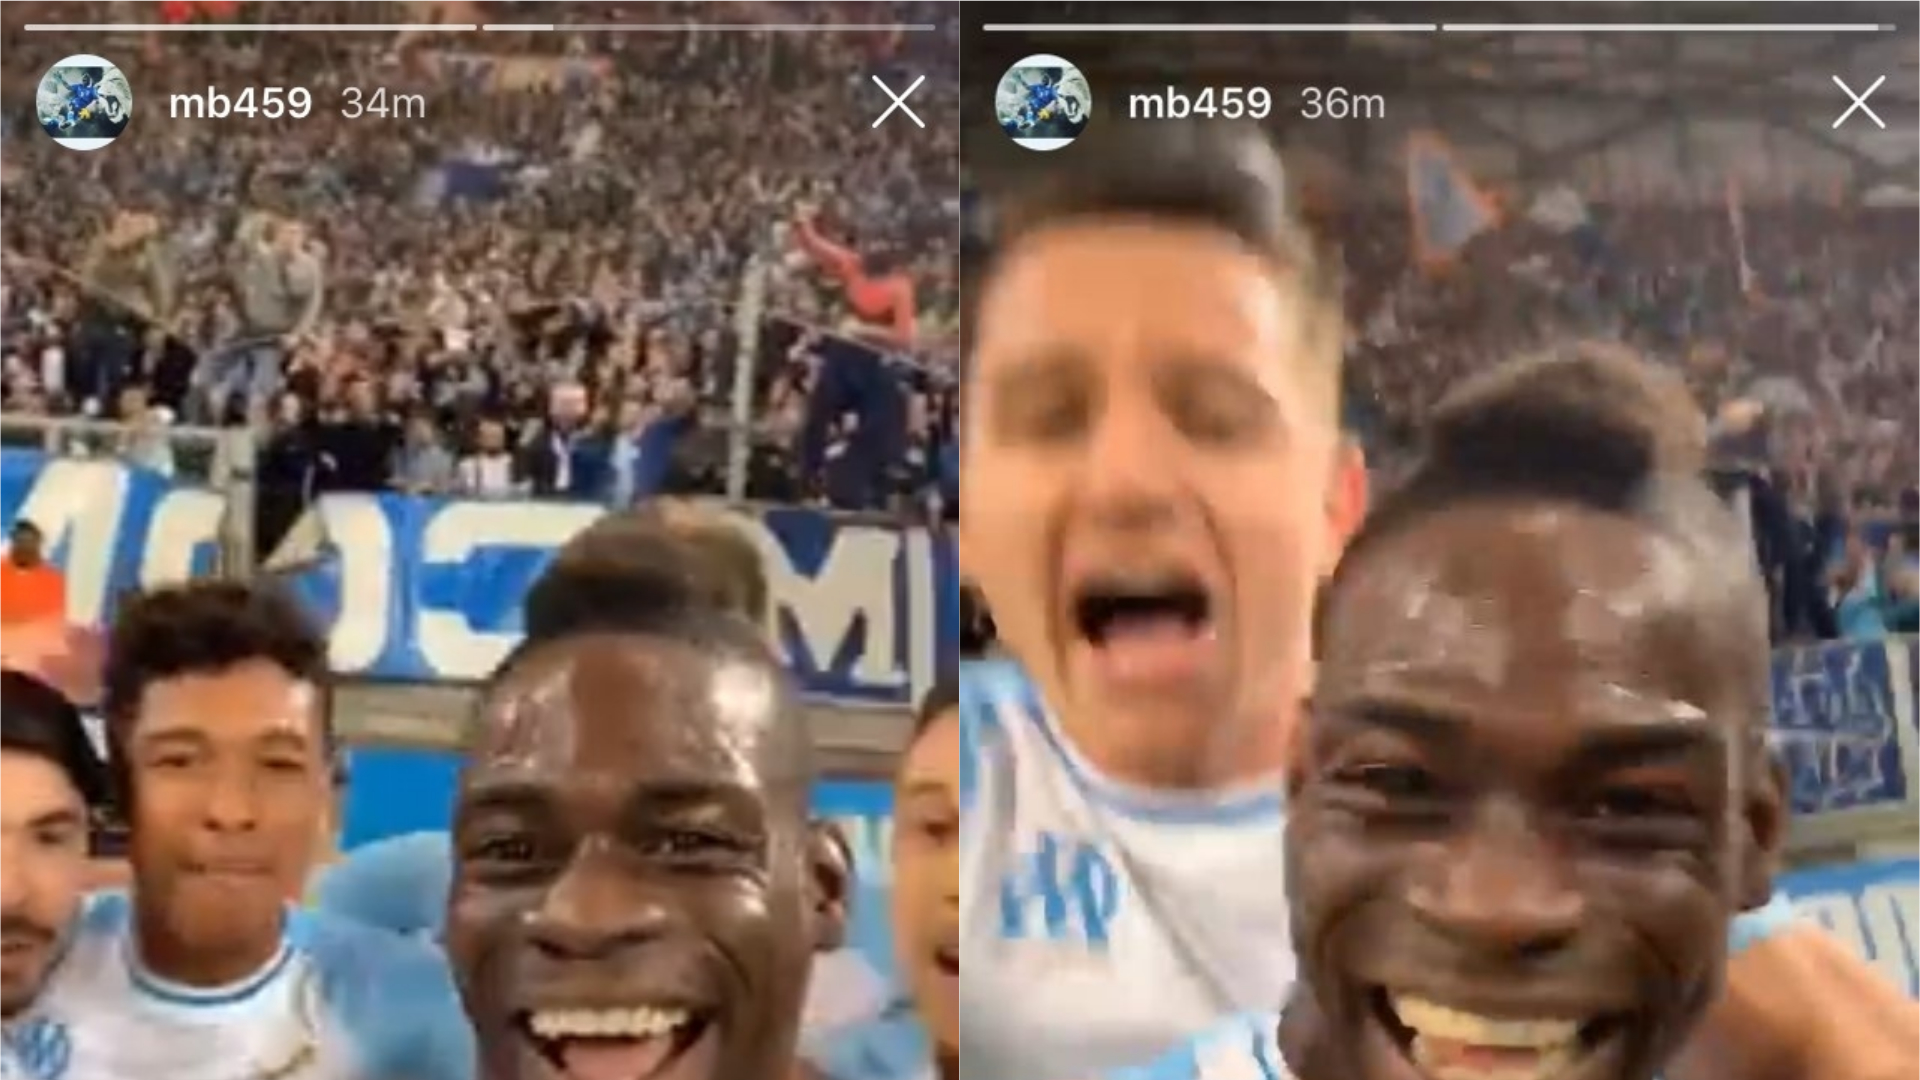 Mario Balotelli celebrates scoring a goal for Marseille by going live on Instagram